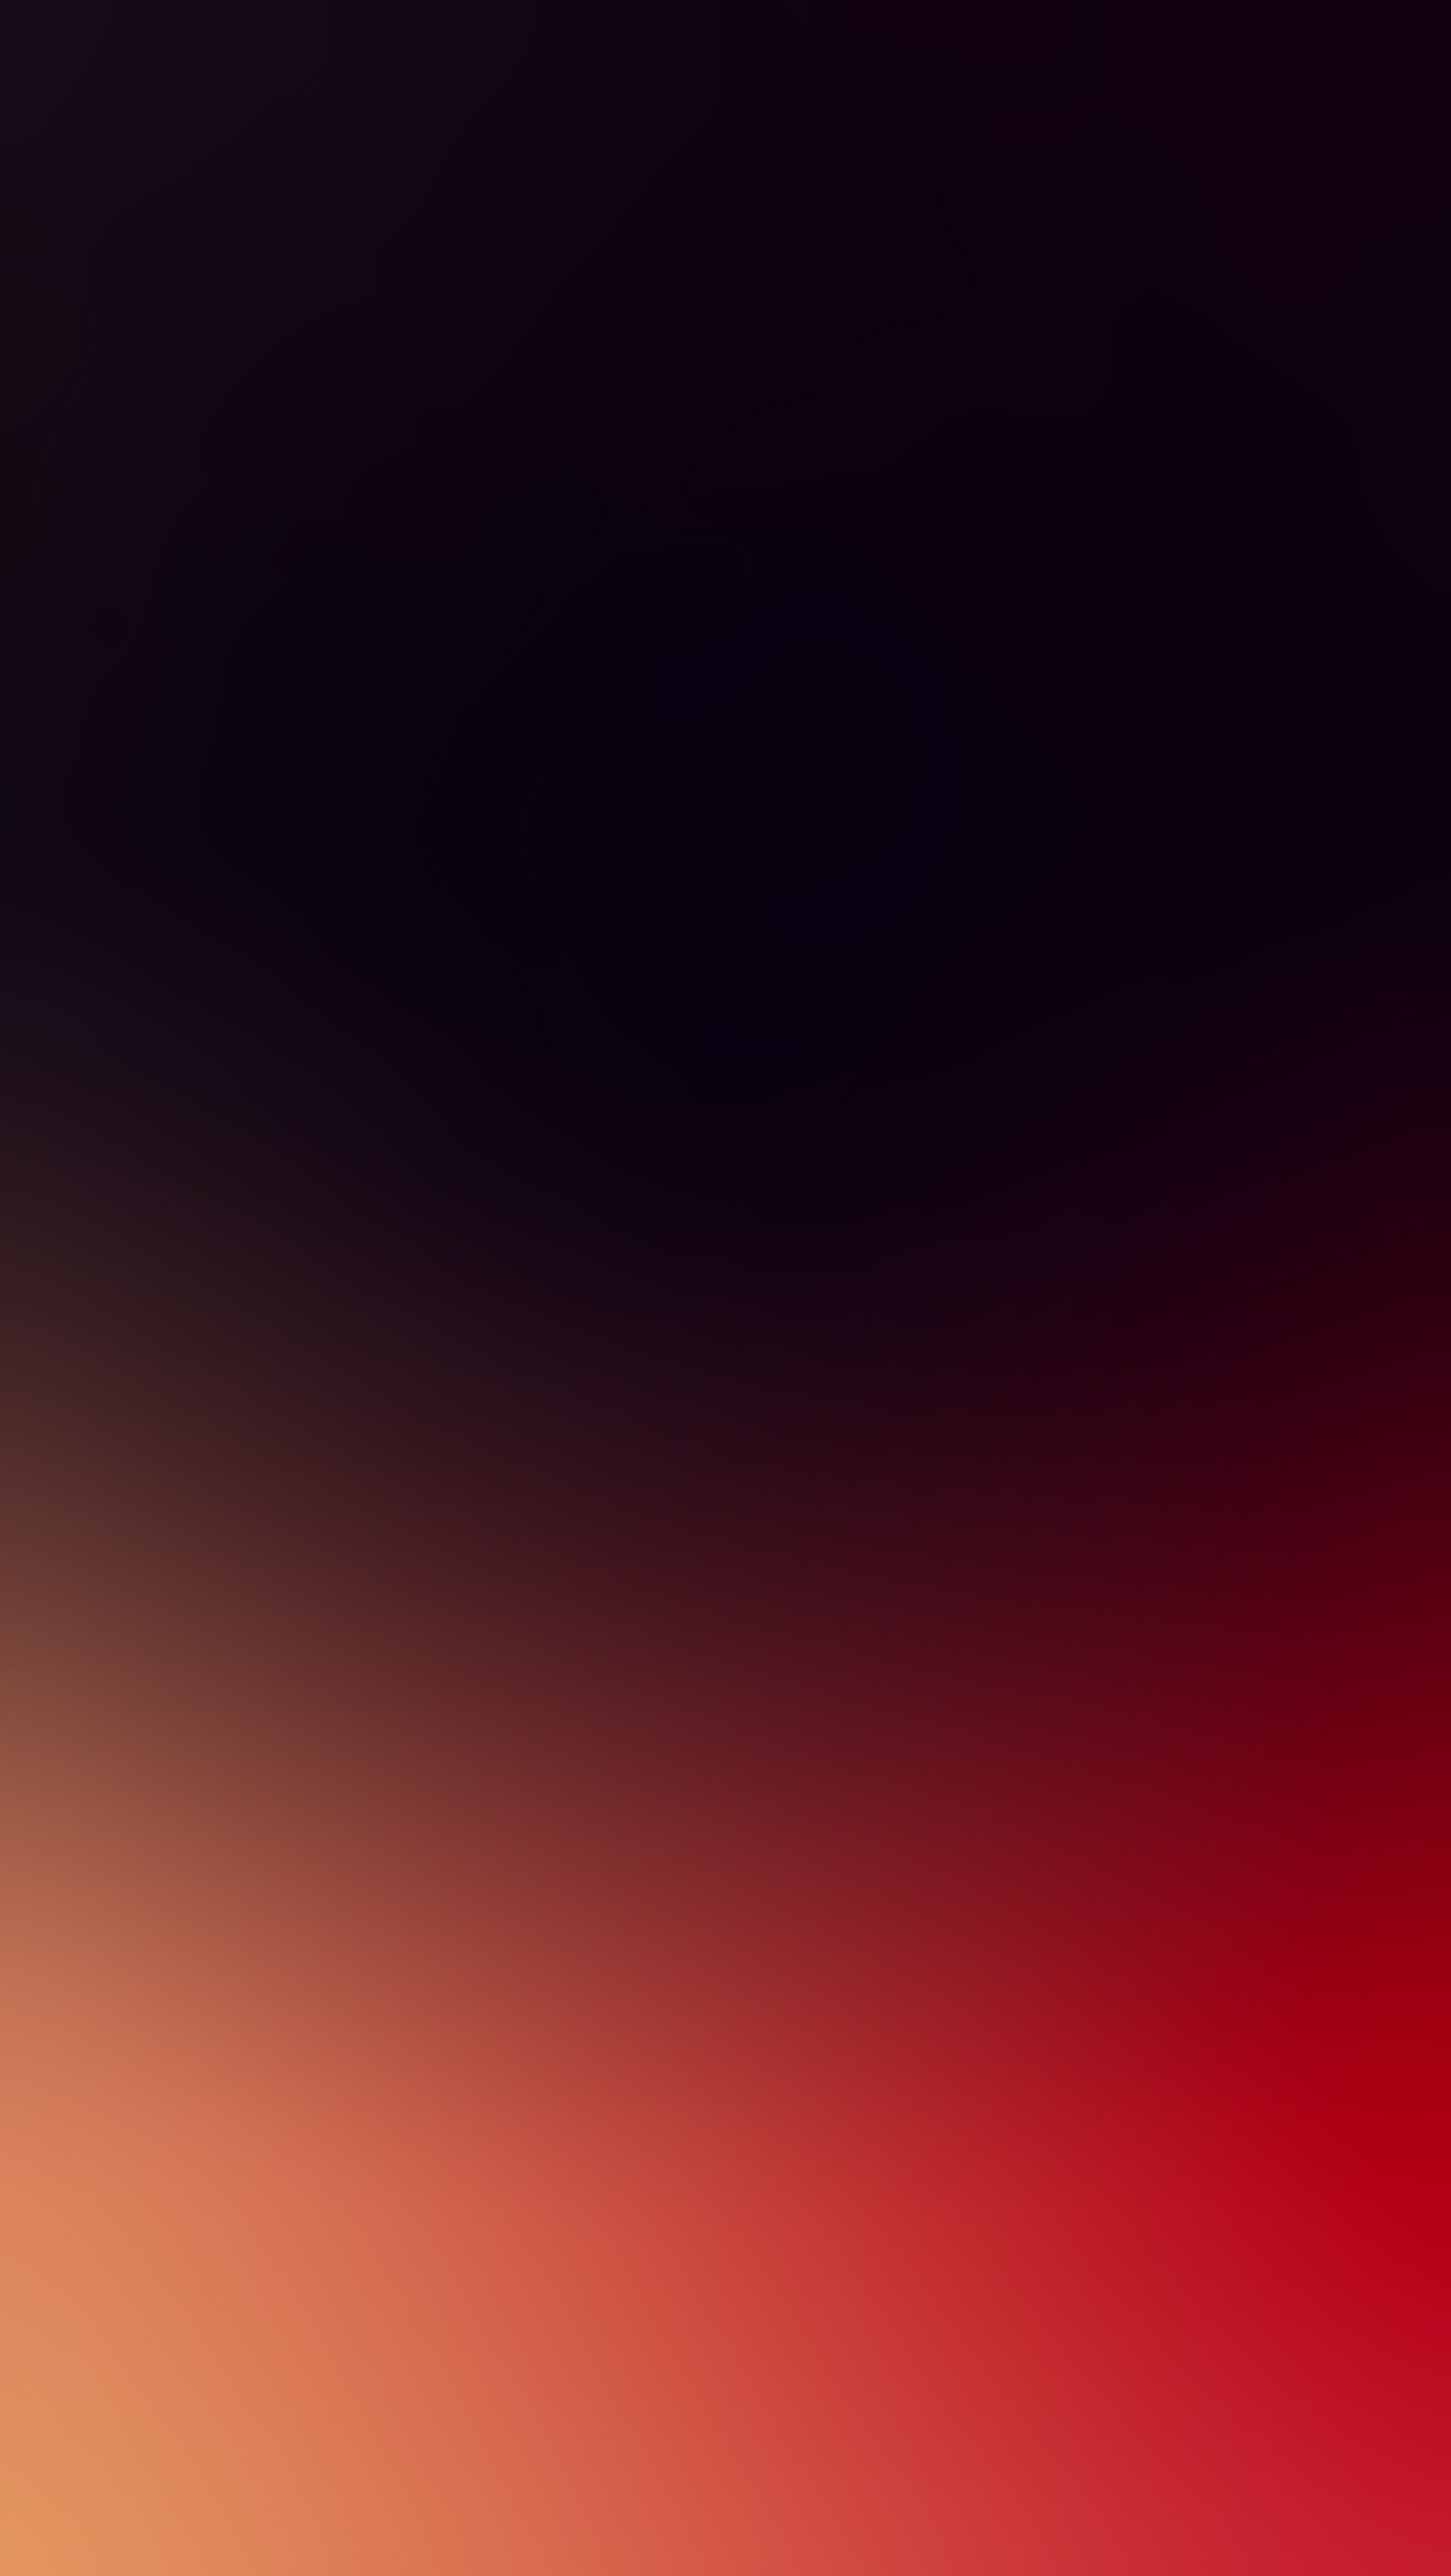 35 Red Gradient Wallpapers Download At Wallpaperbro Iphone 6 Wallpaper Backgrounds Huawei Wallpapers Iphone 6s Wallpaper